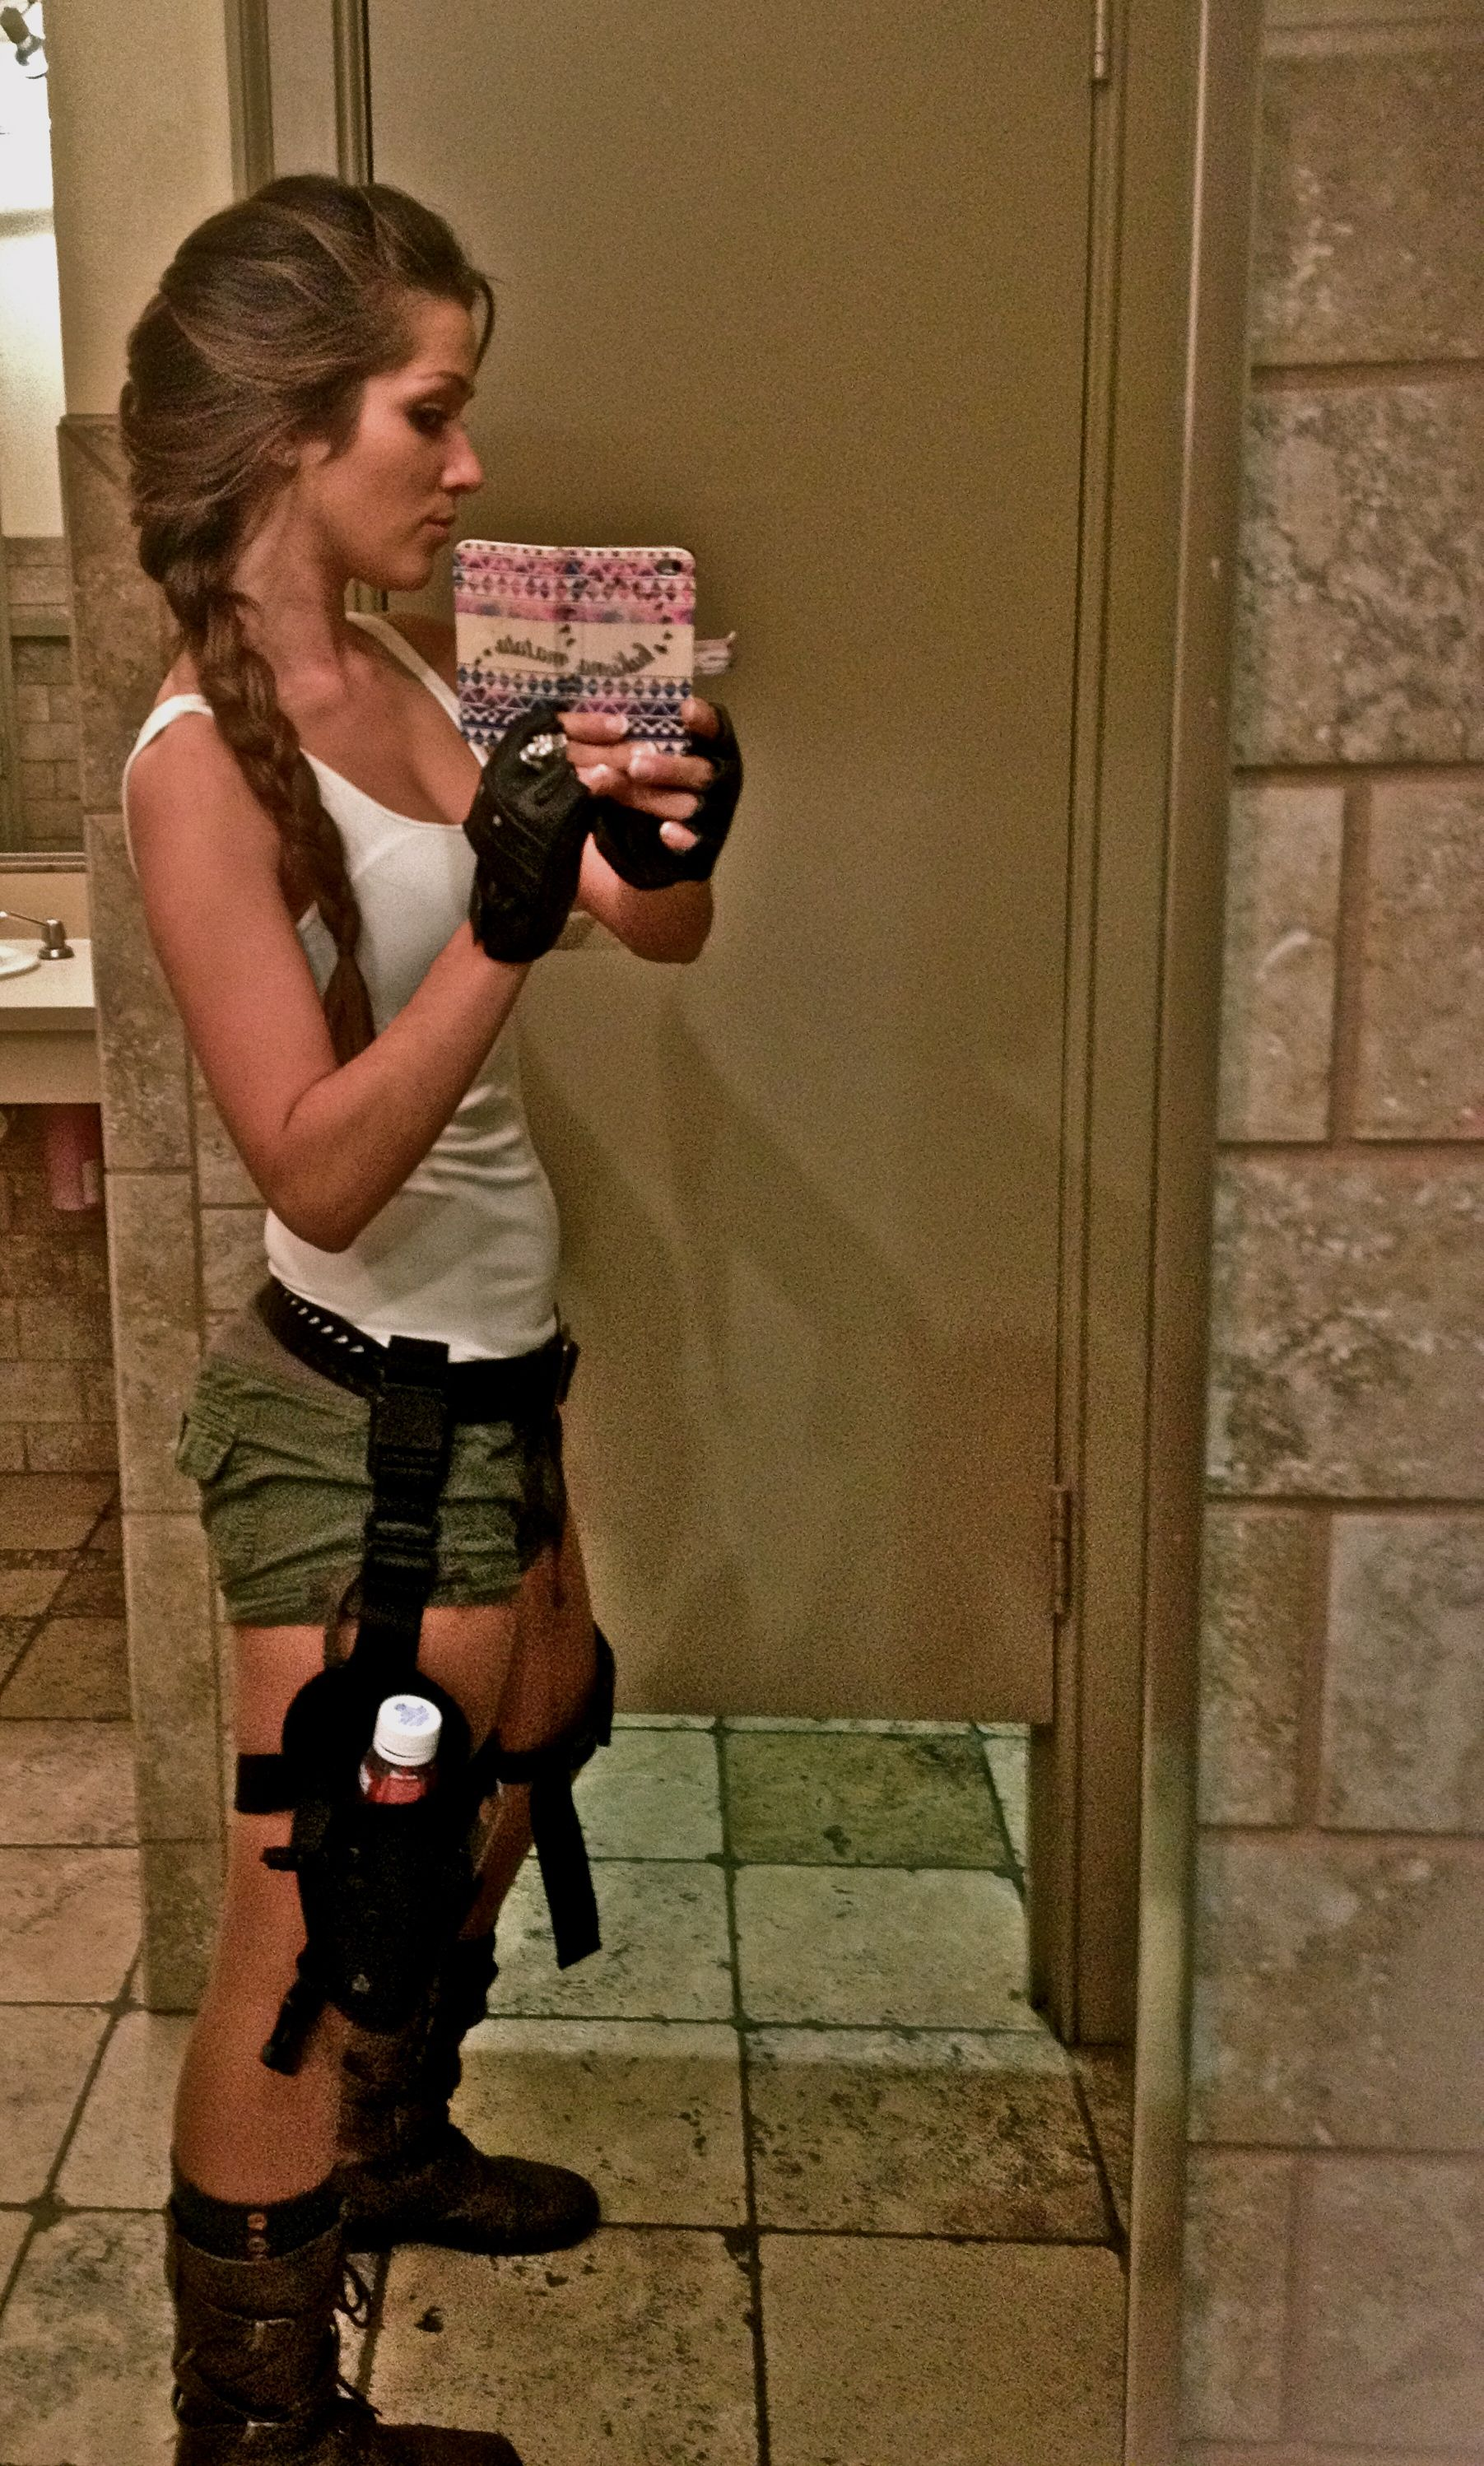 My Lara Croft Costume Ordered The Holsters And Gloves On